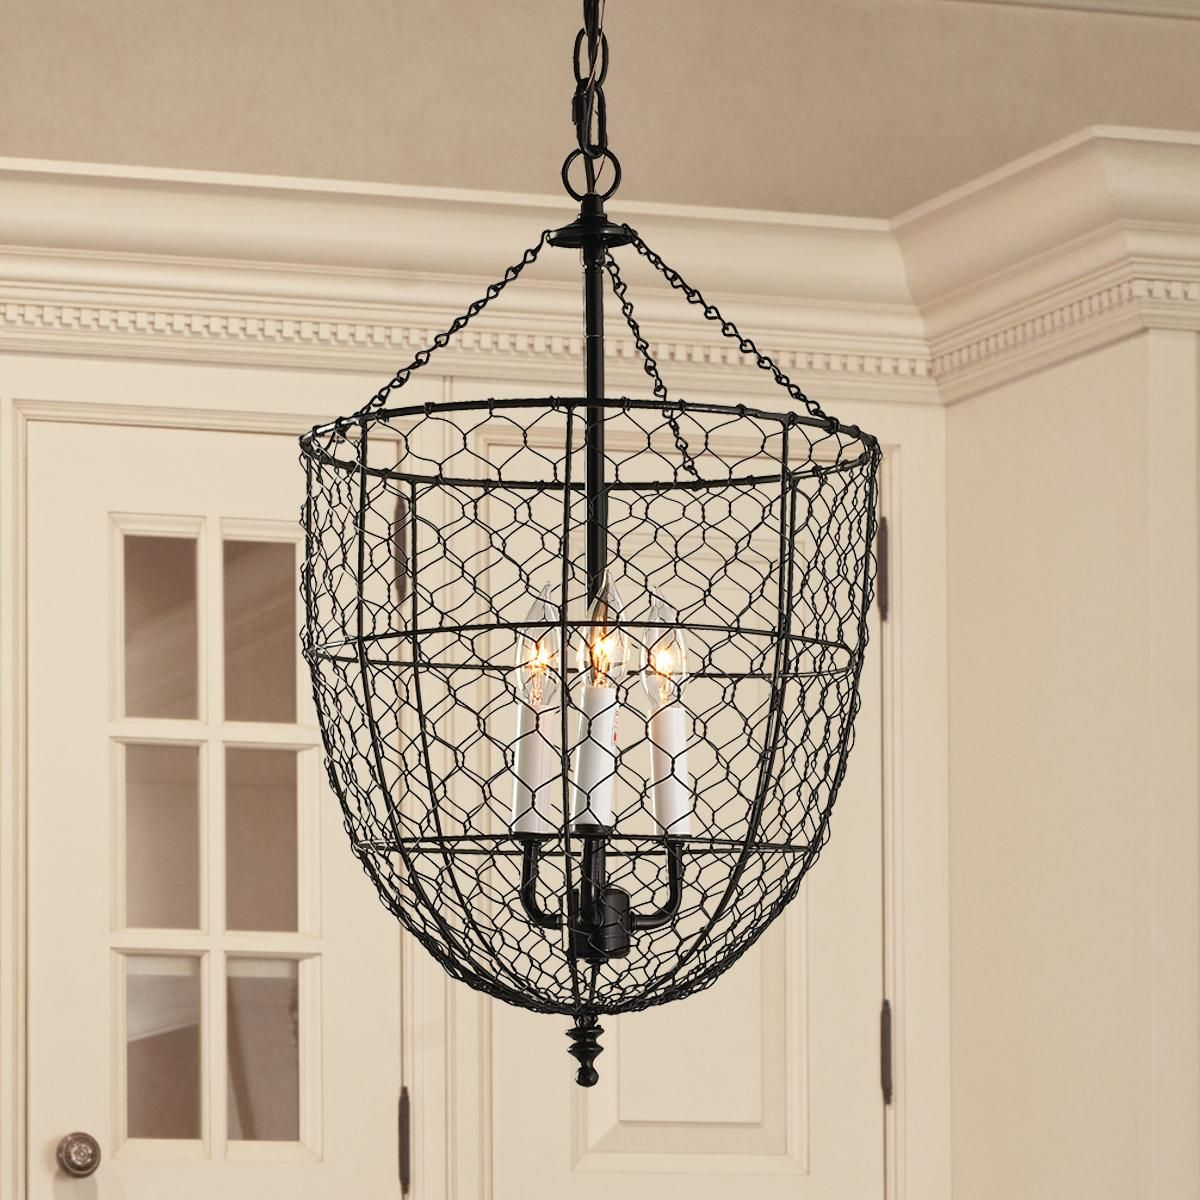 Chicken Wire Smokebell Lantern